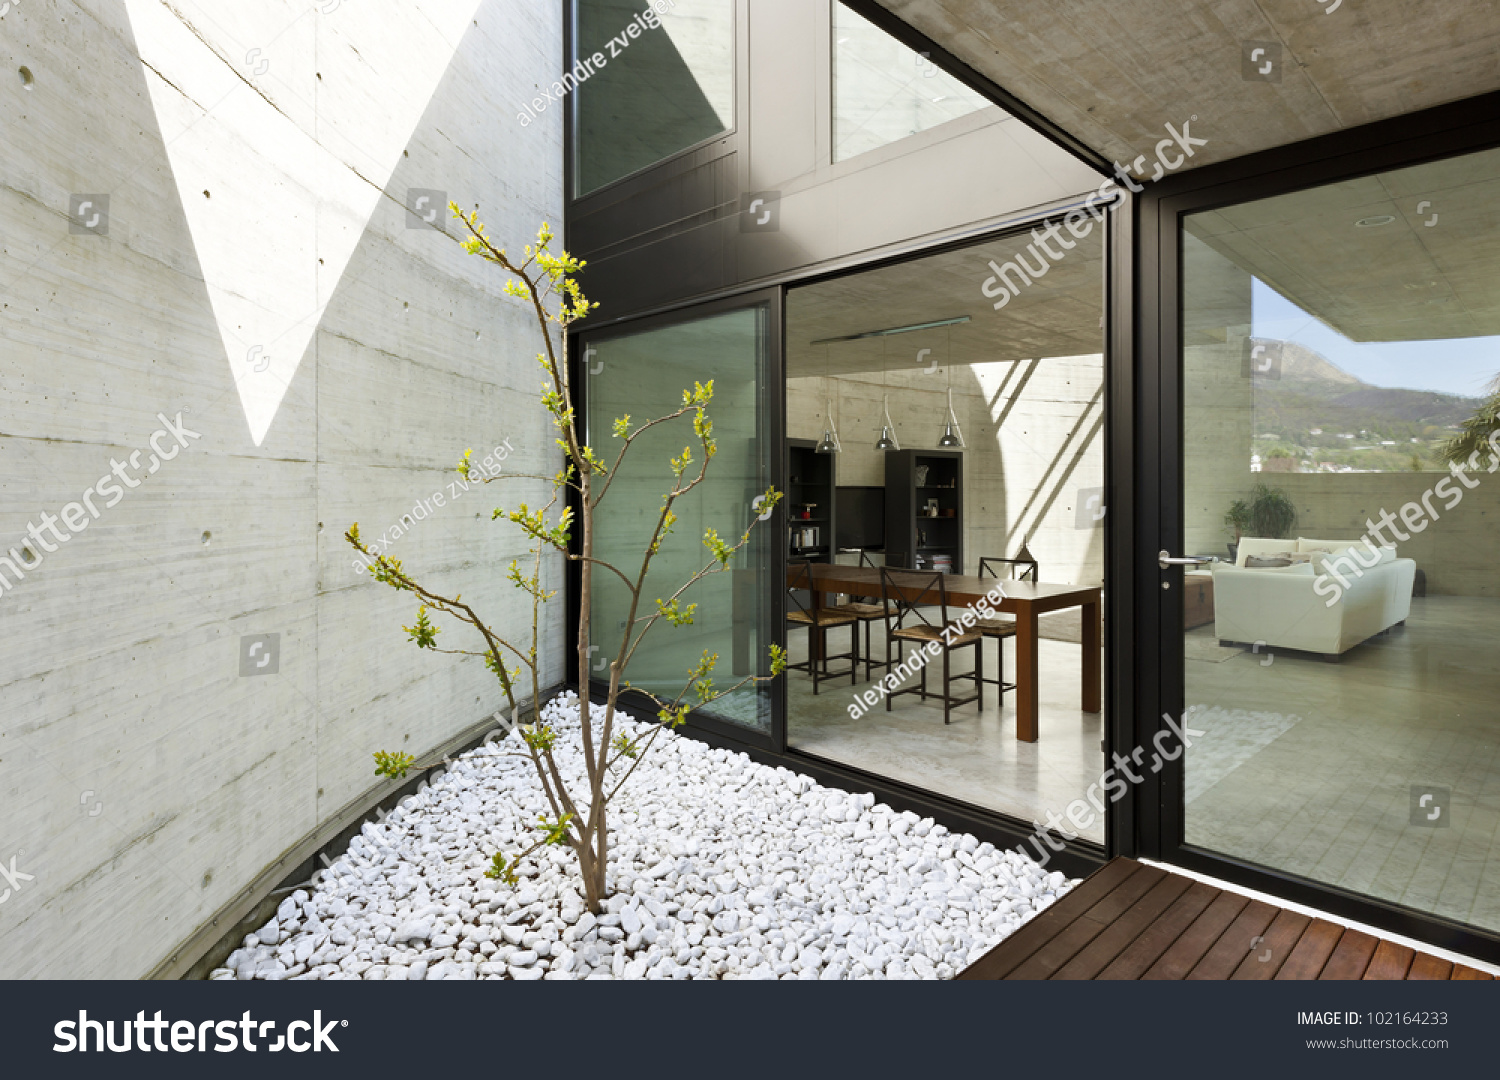 Beautiful Modern House In ement, Dining oom View From he ... - ^